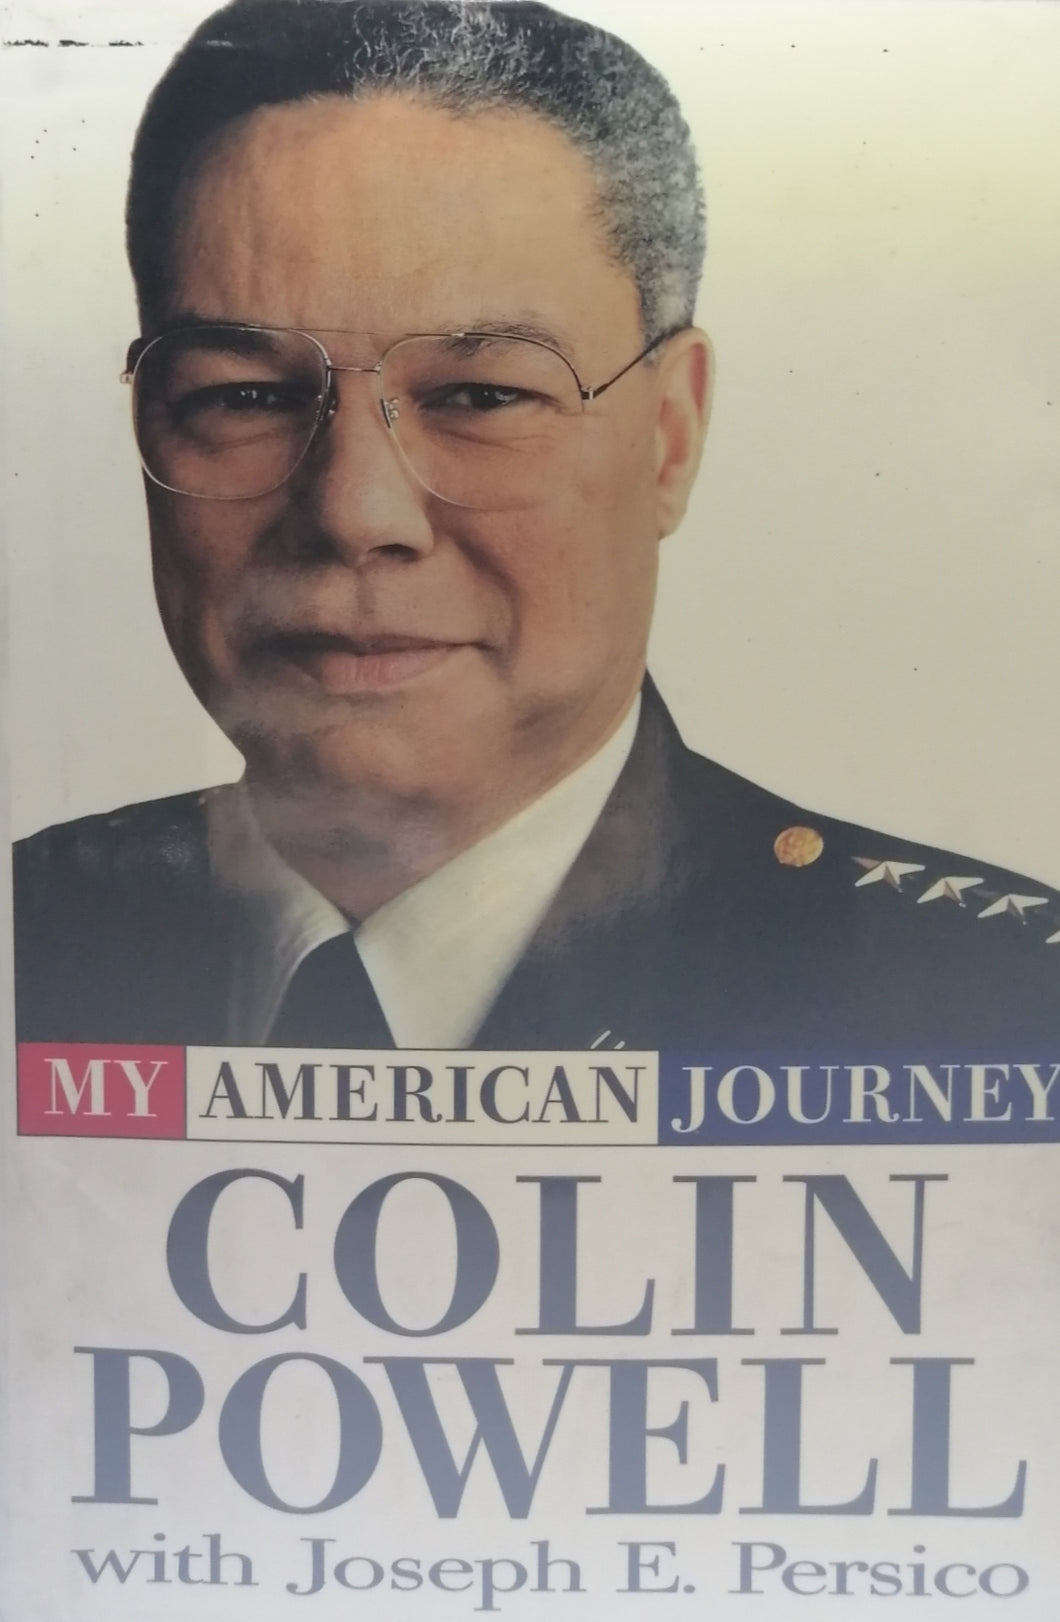 My american journey by Cokin Powell